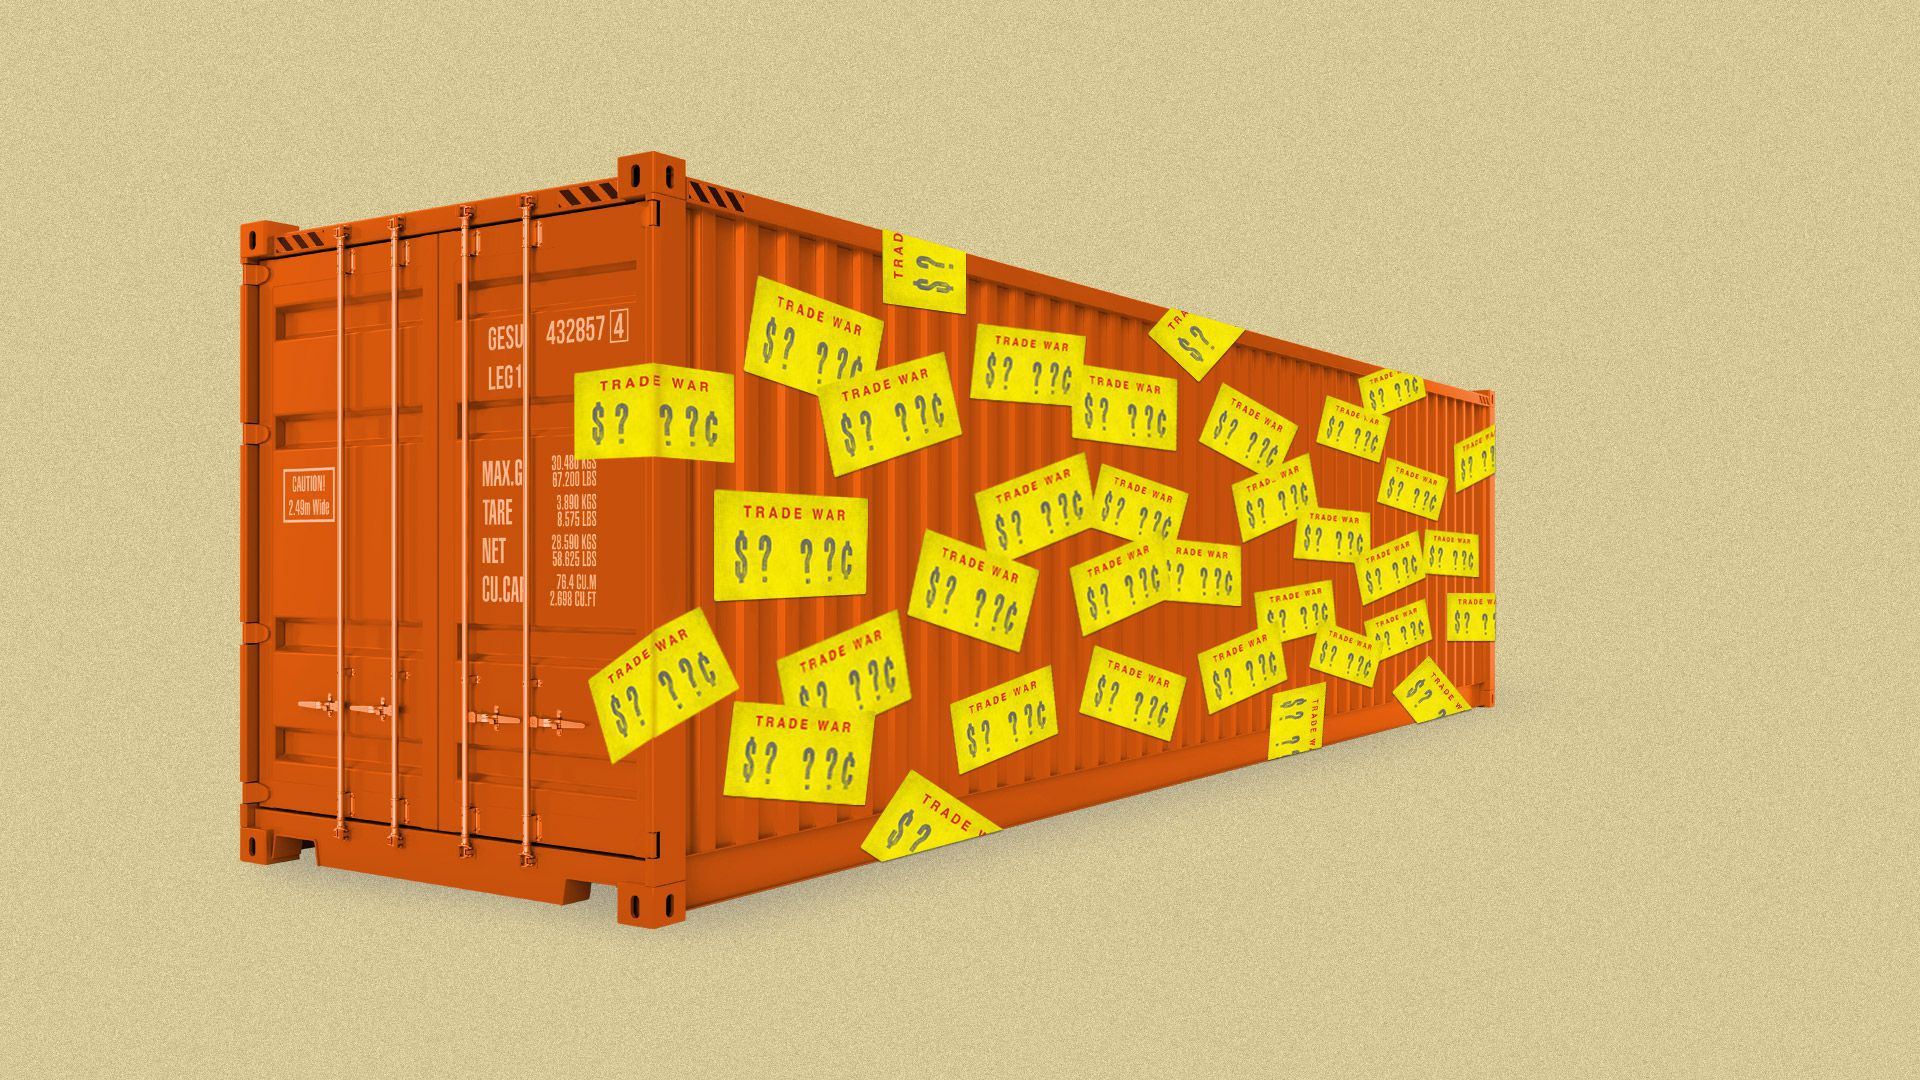 Illustration of orange freight container with yellow Trade War stickers stuck all over it